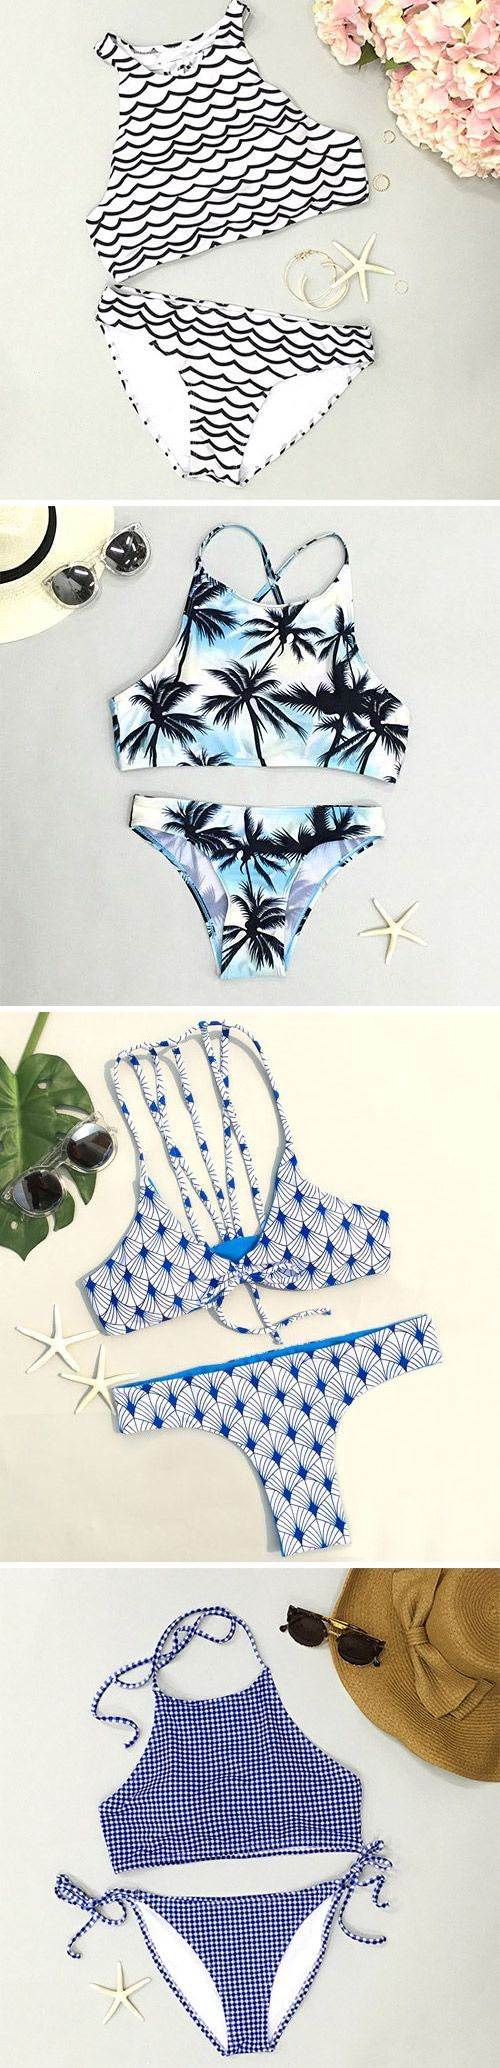 Ready for summer? Everyday new fashion. Go and find more new arrivals for this hot summer. A big world is waiting for you.Indulge in the cool vibe deeply with the stylish bikini. Check out amazing pieces that suit you at Cupshe.com !